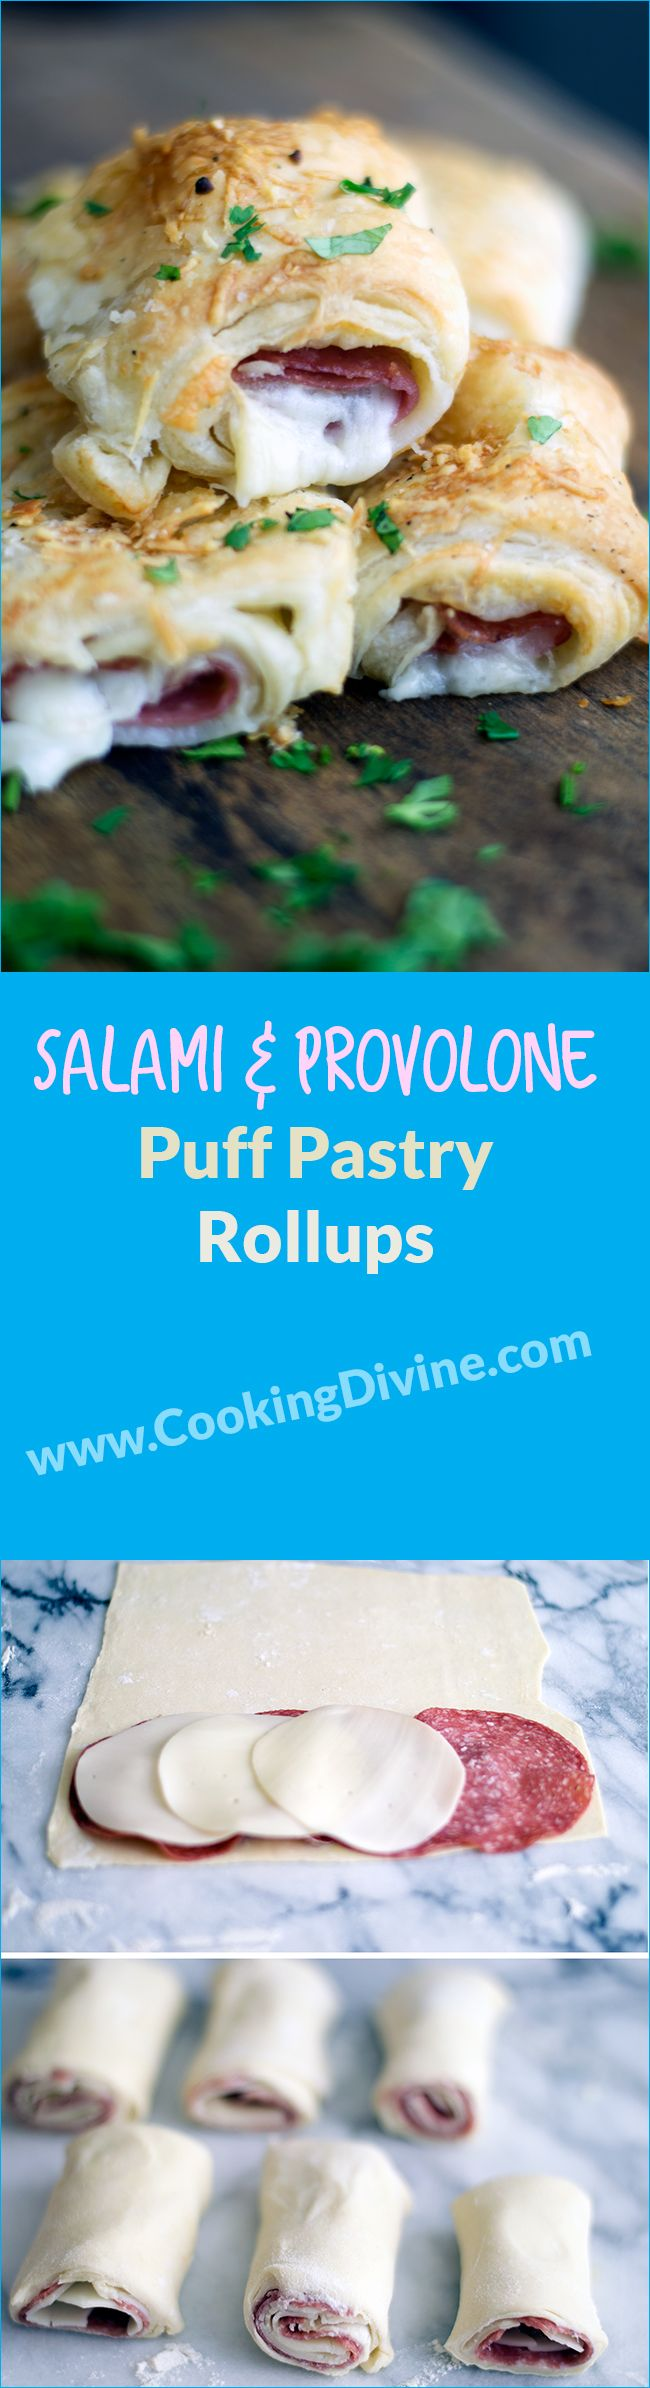 Salami and Provolone Puff Pastry Rollups Recipe:  This is a unique take on a classic Italian combination.  I actually came up with the idea for this appetizer with a mouth full of salami and provolone that I was snacking off a charcuterie board.  My first thought was of course, how can I make this already fattening appetizer even more unhealthy and delicious?